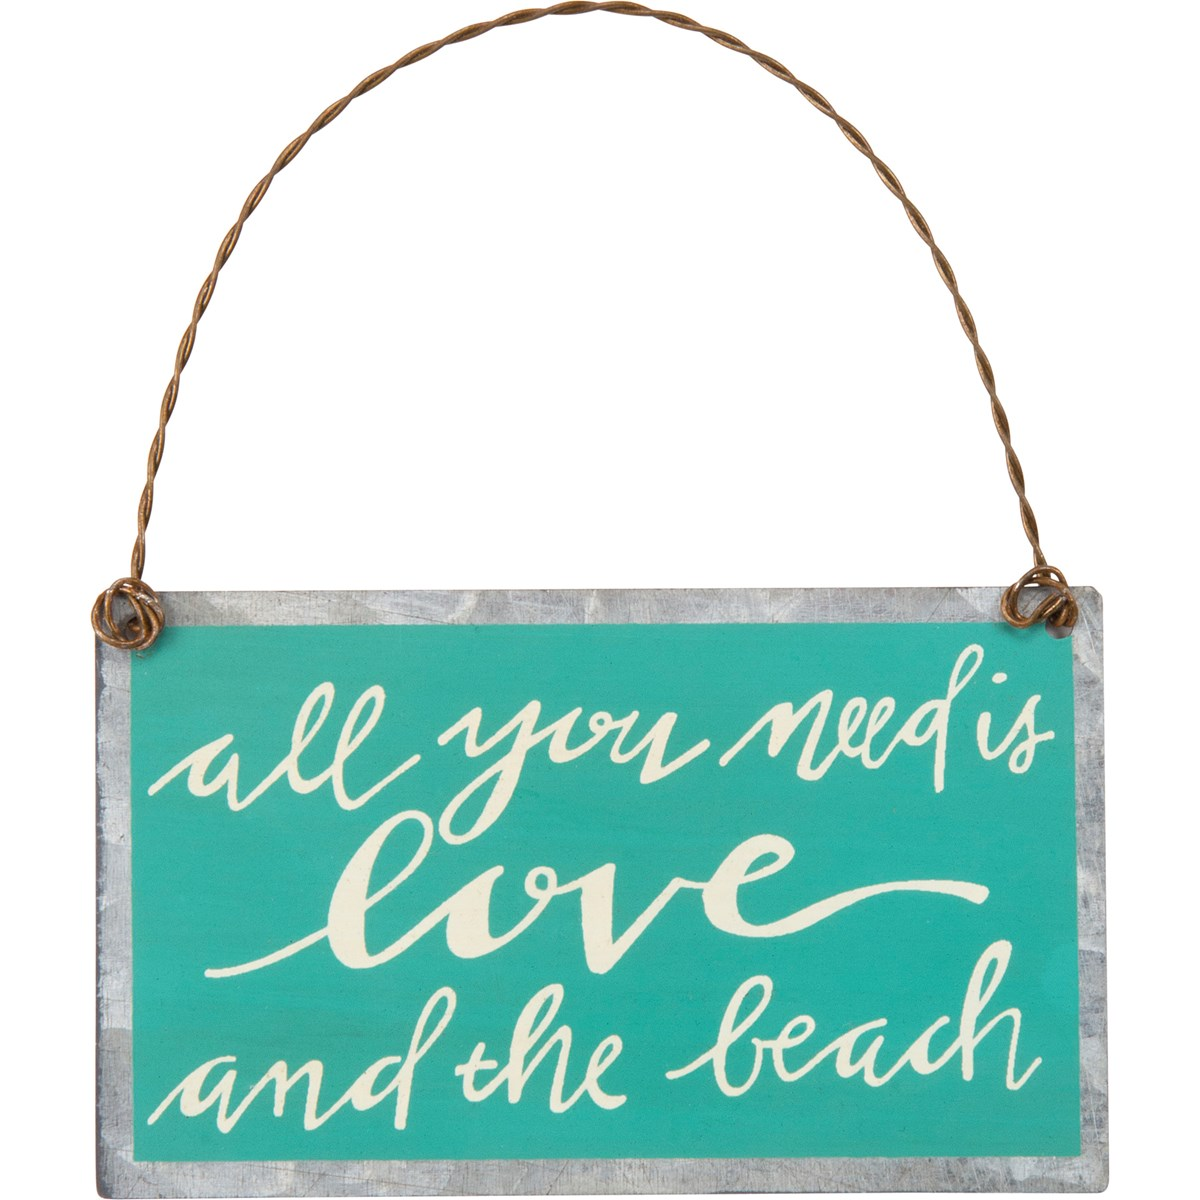 "Ornament - And The Beach - 3.75"" x 2.25"" - Metal, Wire"